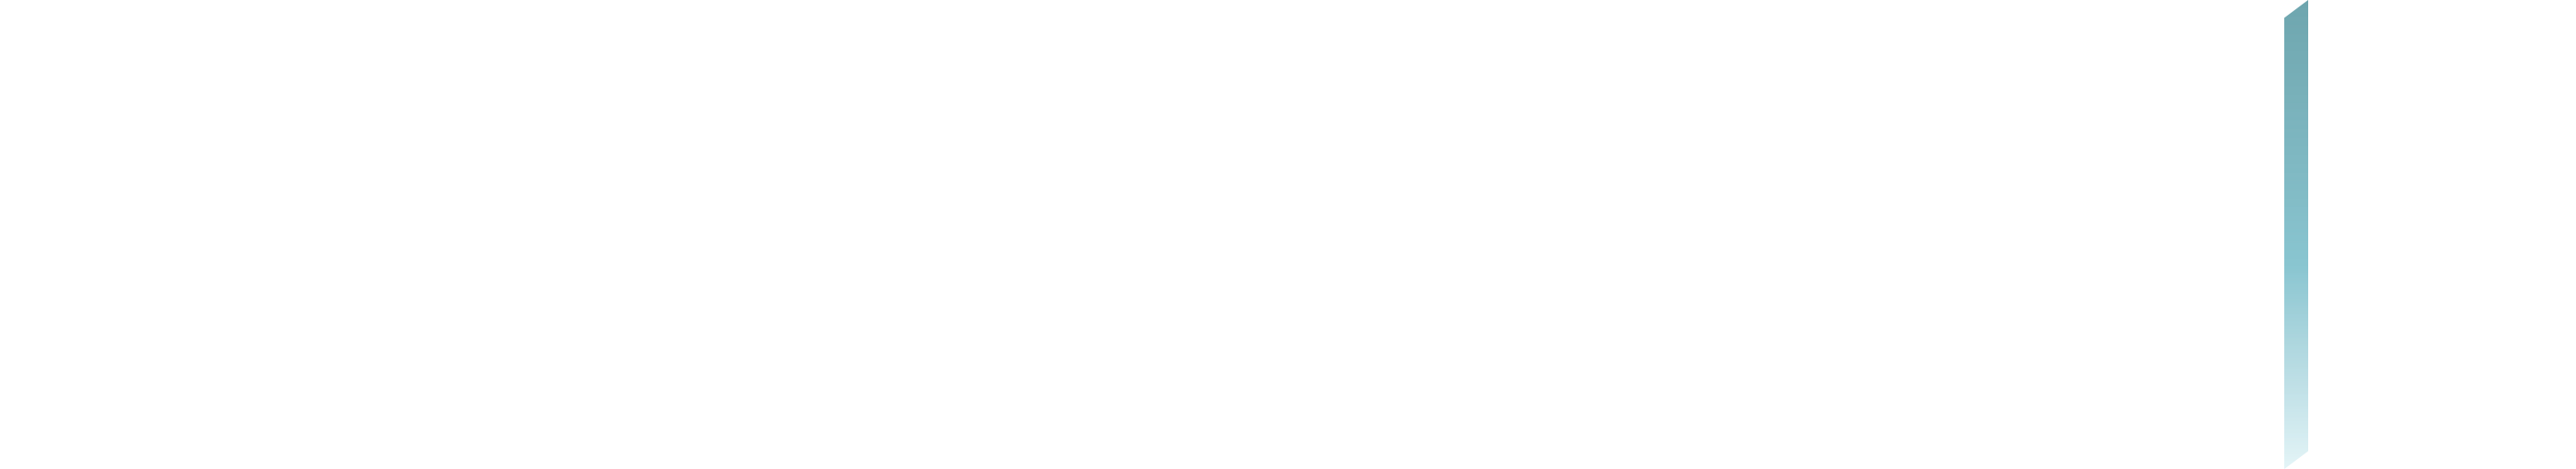 Titanfall 2 logo png. The epic sequel to